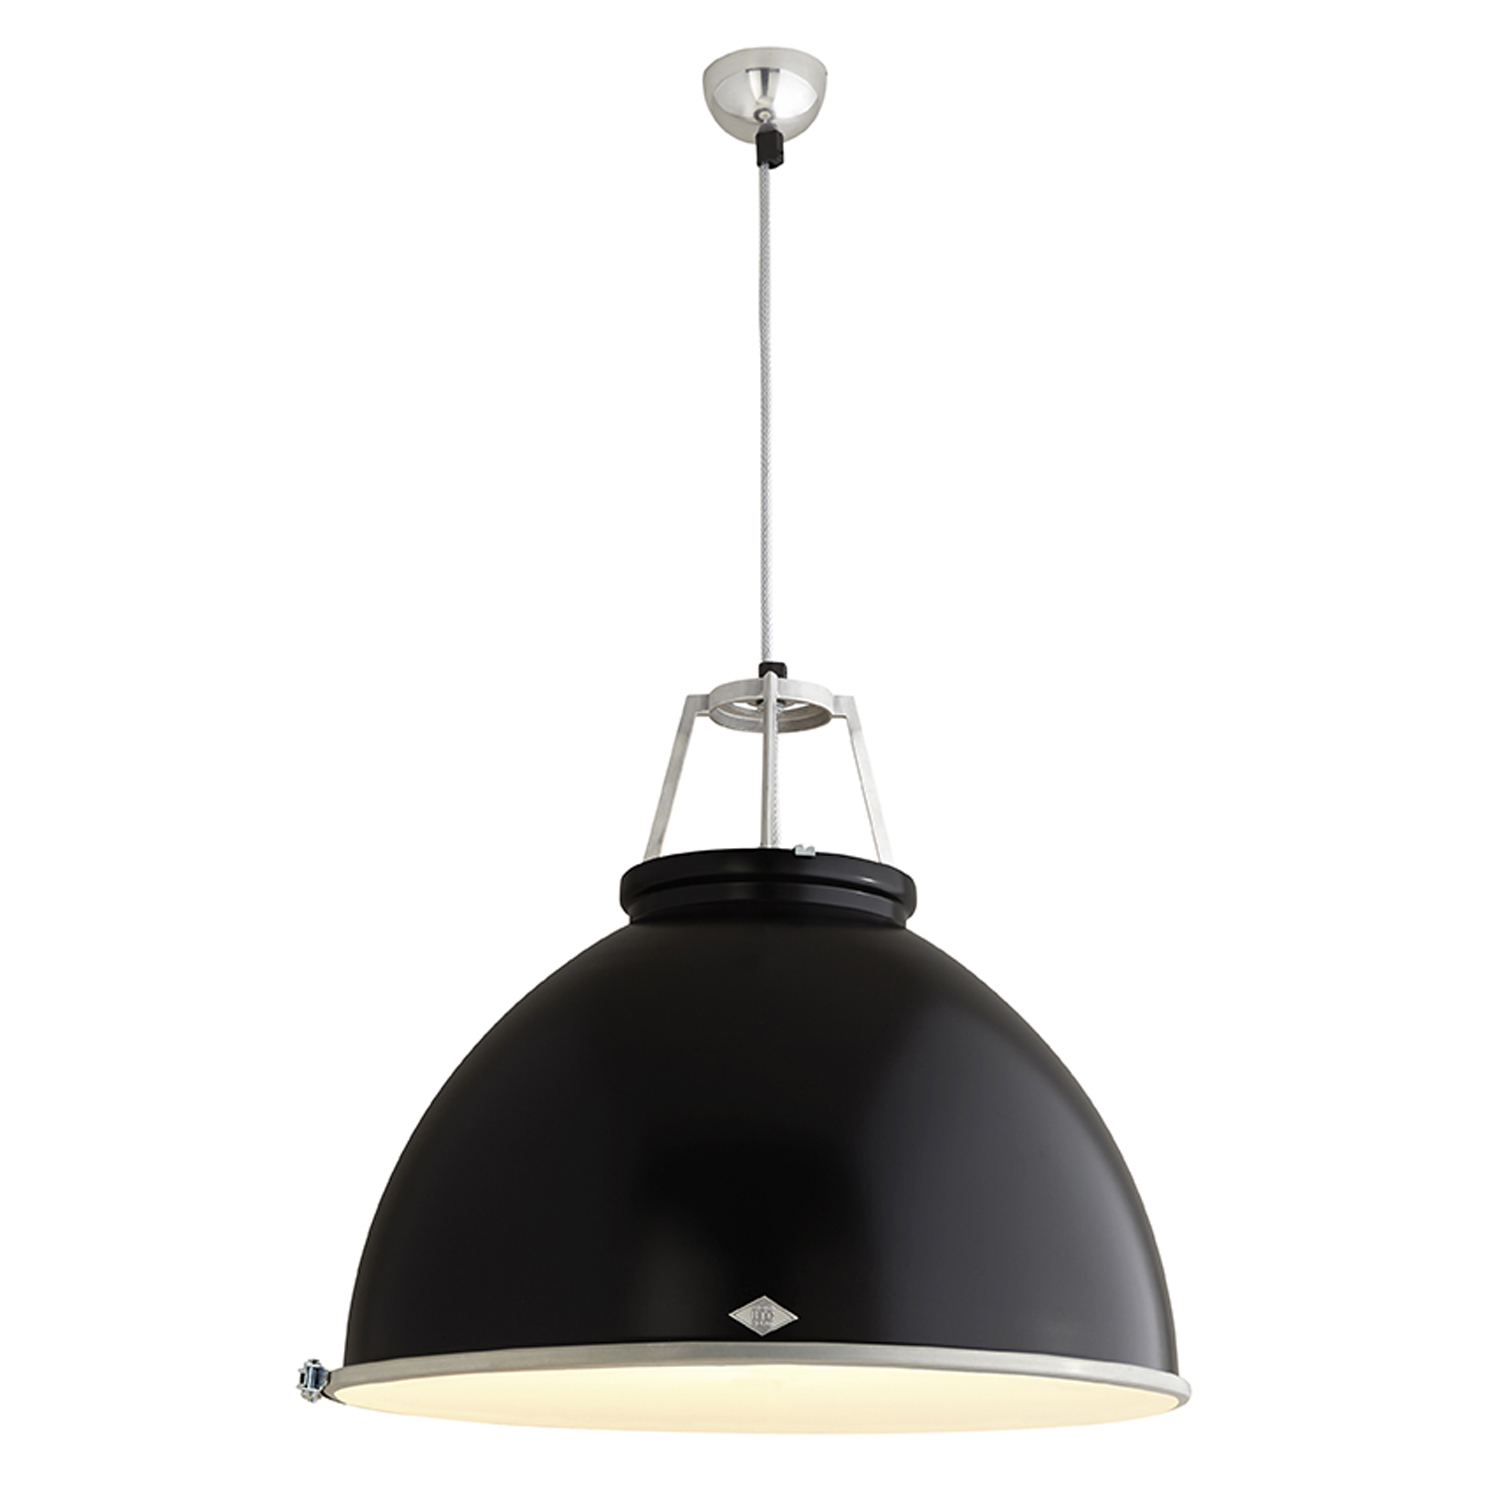 Titan Size 5 Pendant Light, Black with Etched Glass